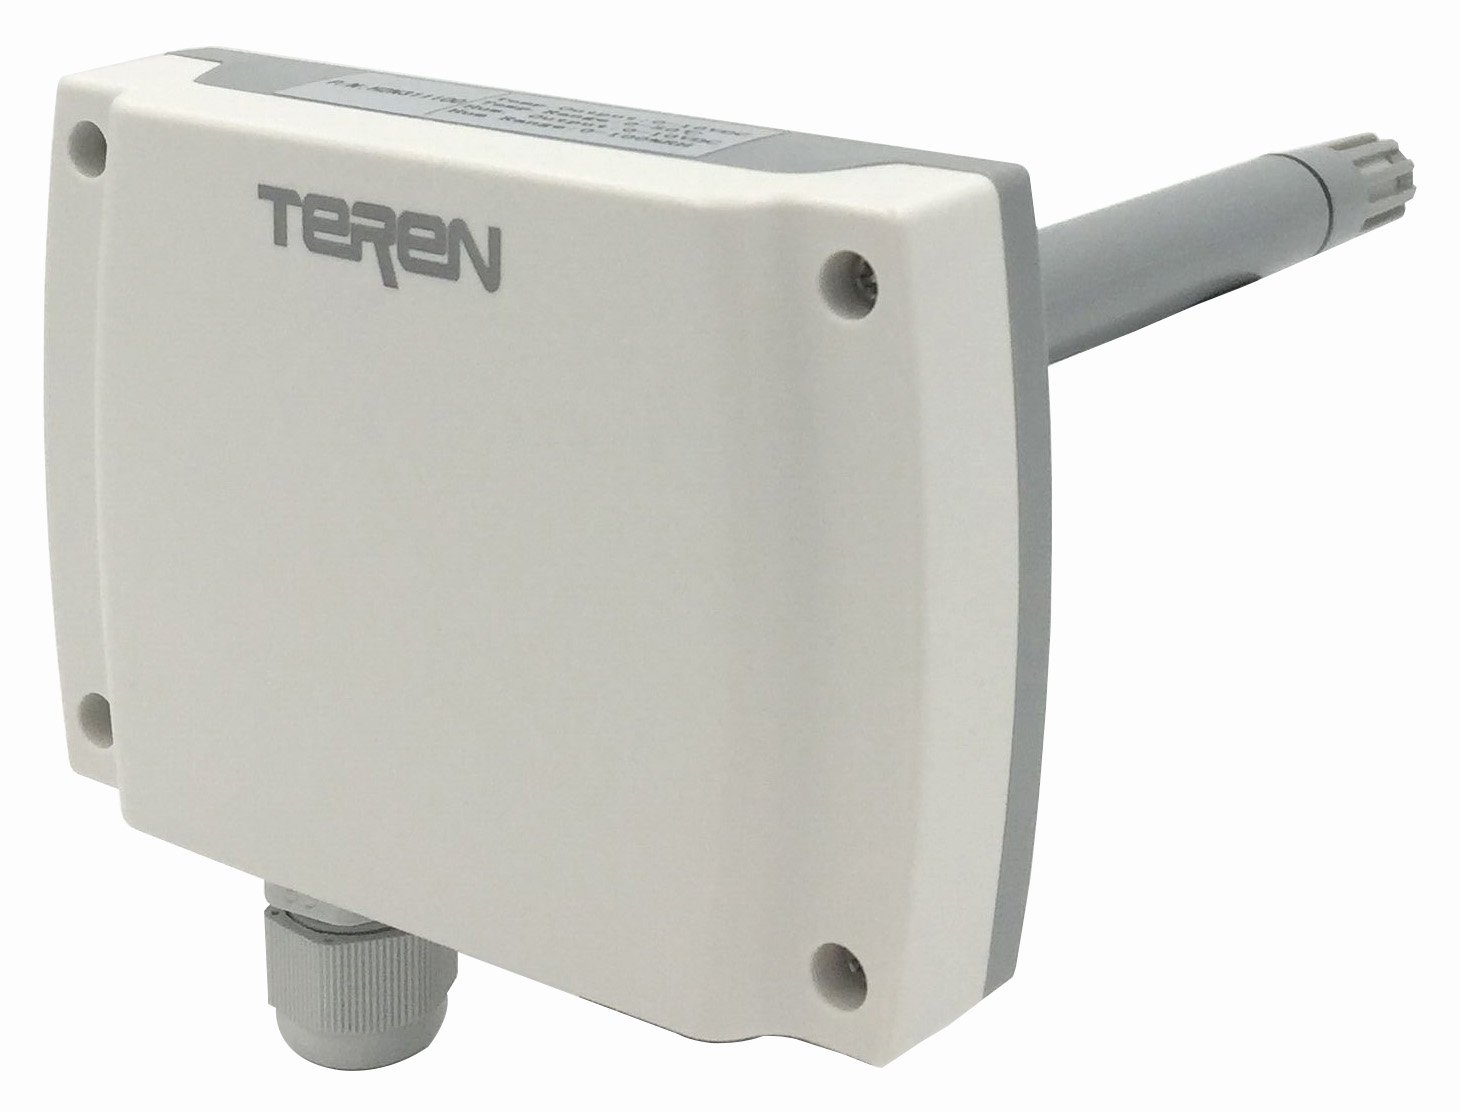 TEREN Duct Mount Temperature & Humidity Transmitter, H2N322100, 3% Accuracy, 4-20mA Output